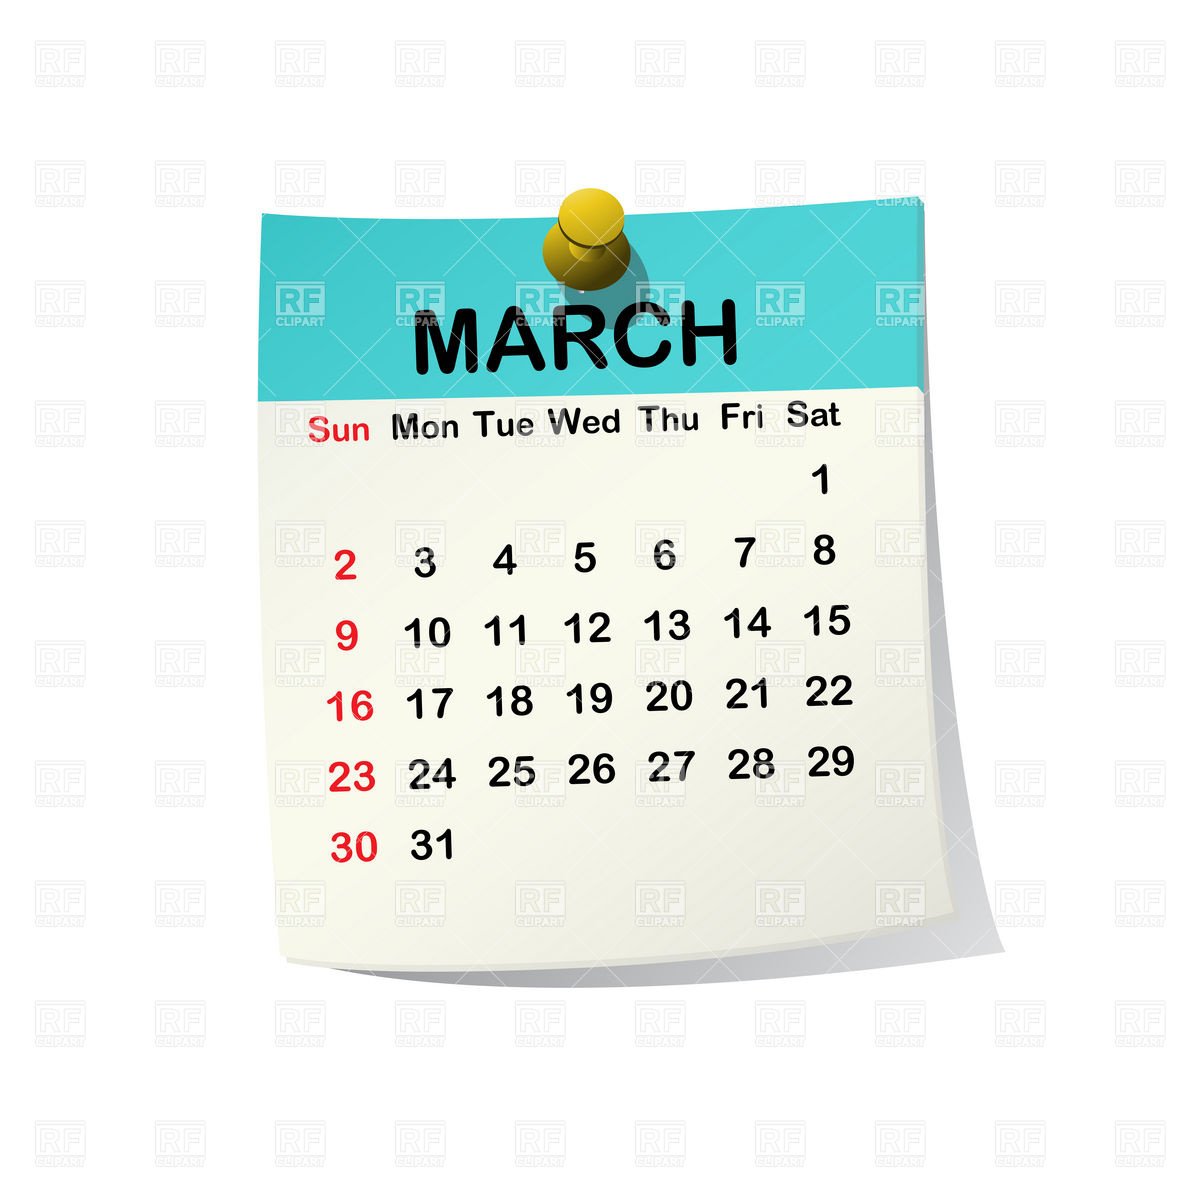 March 2014 Month Calendar 20535 Calendars Layouts Download Royalty